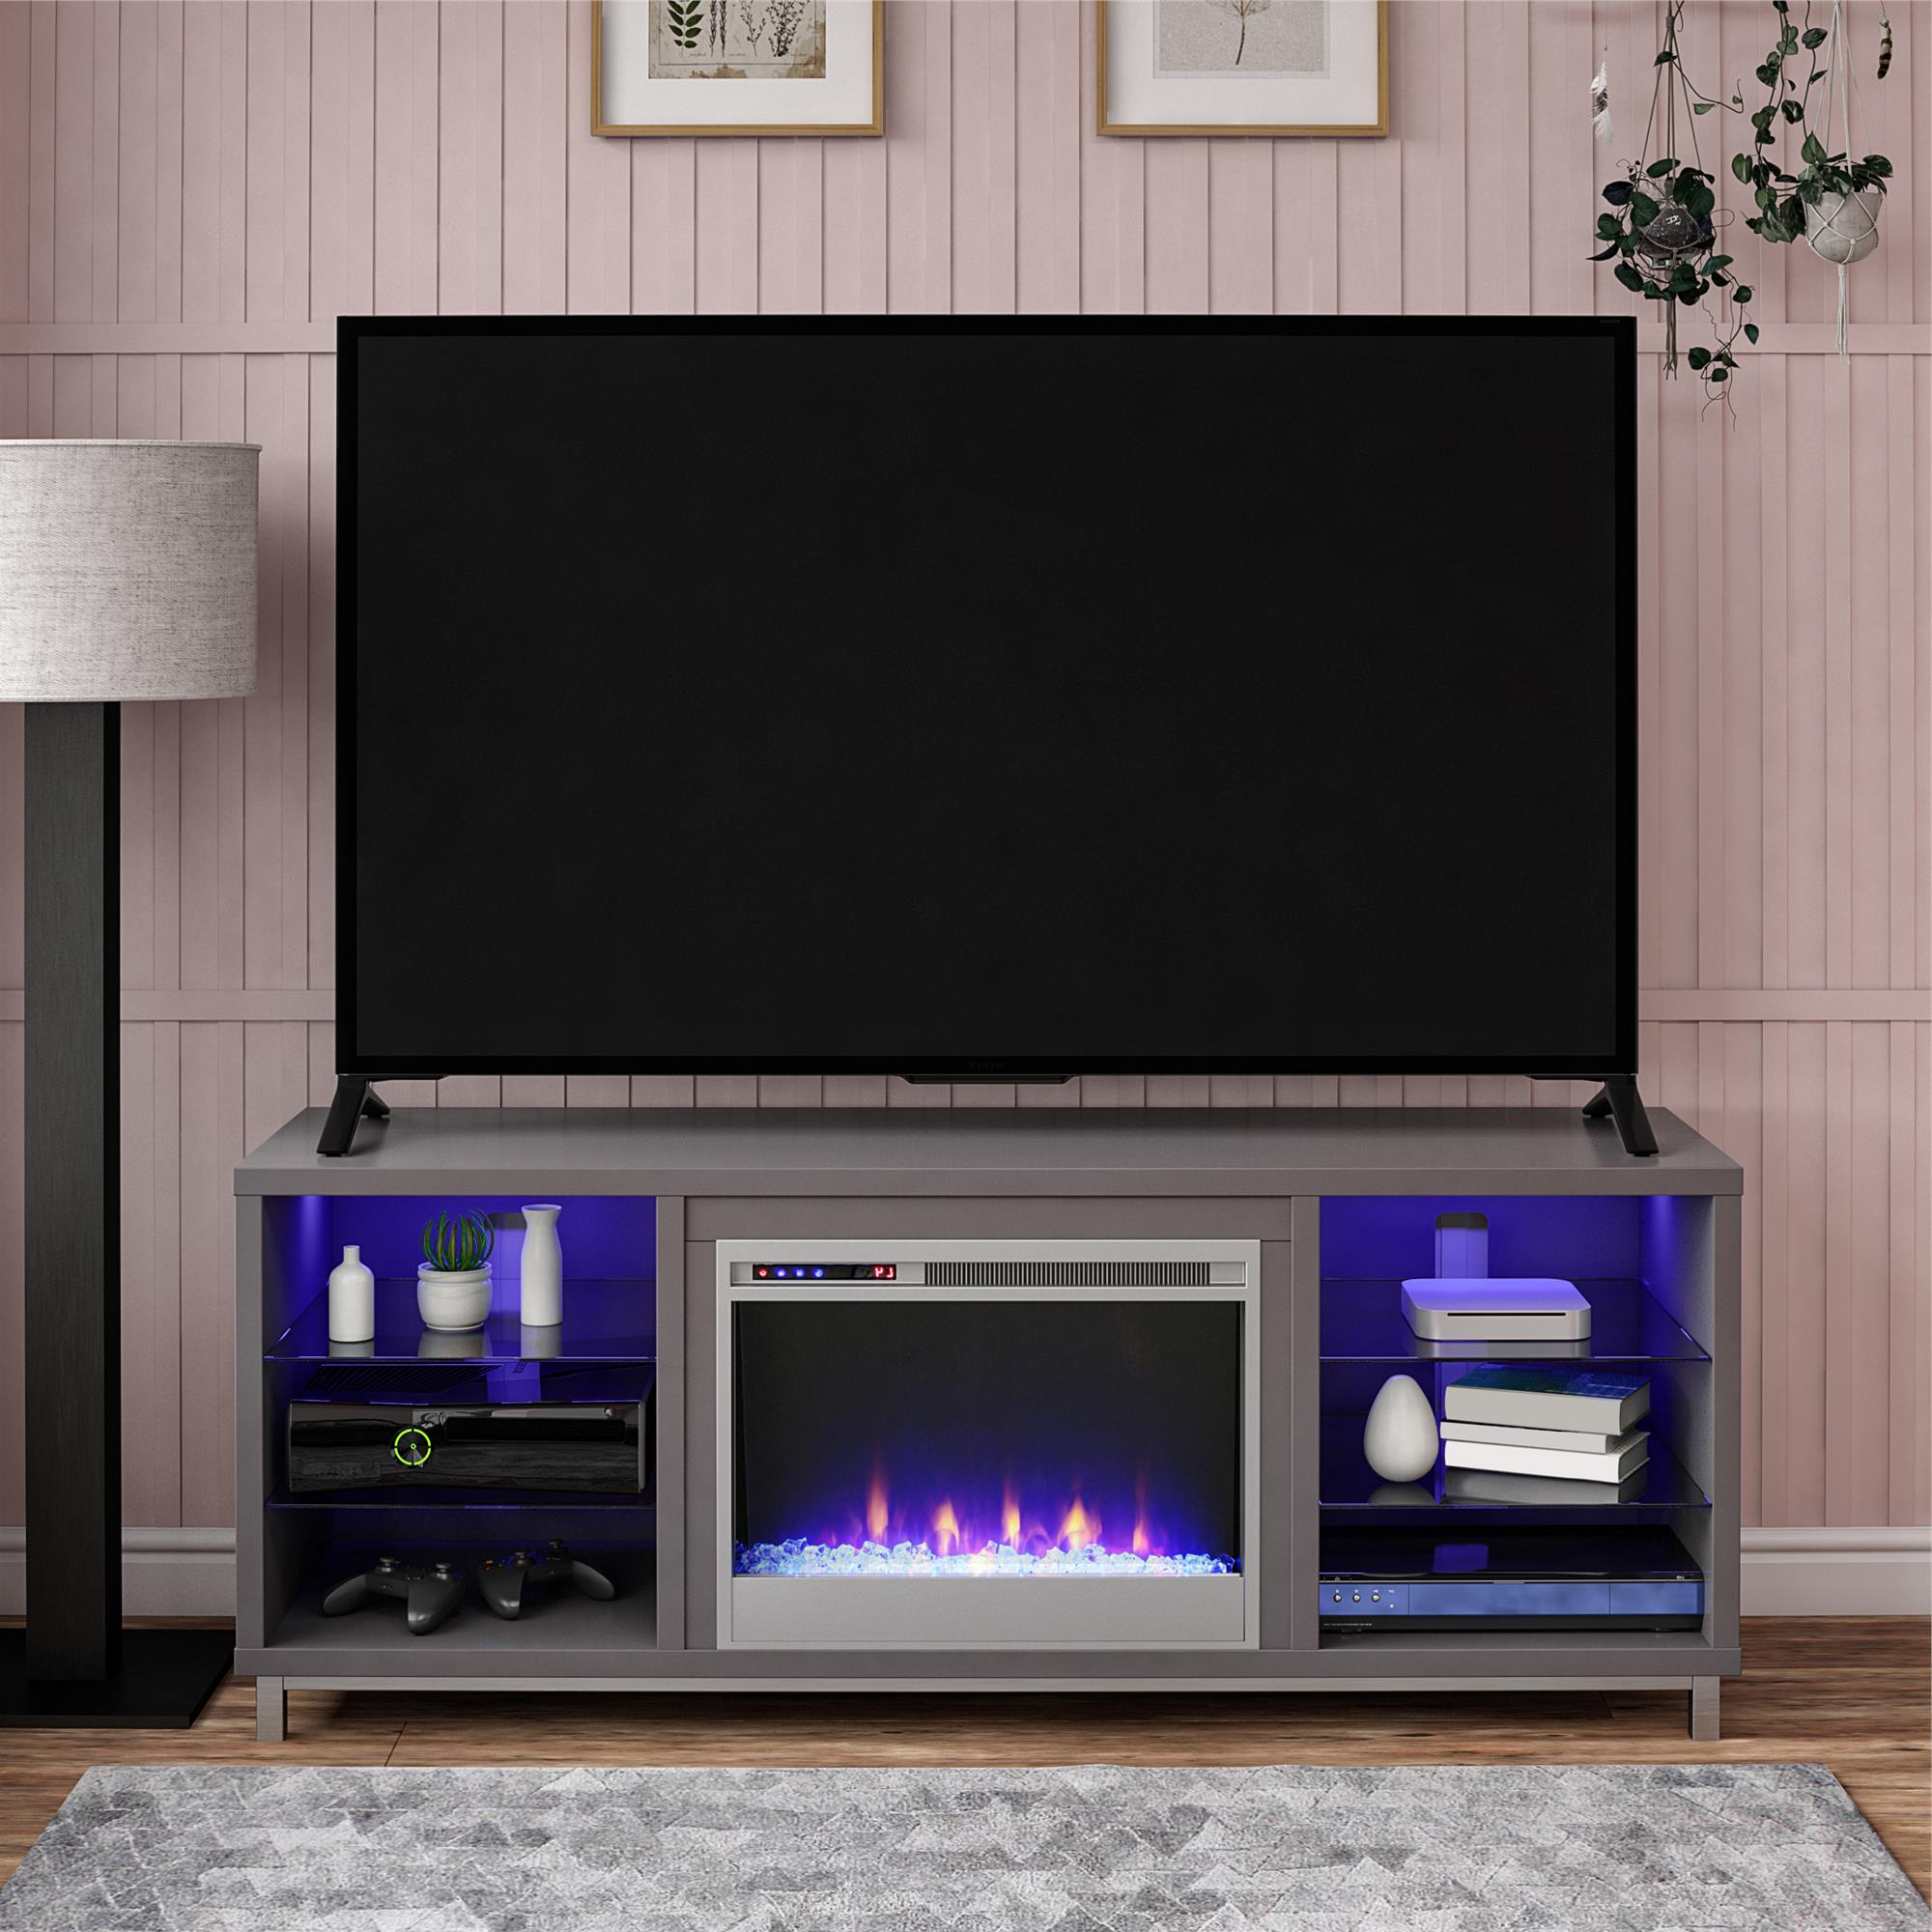 """2018 Ameriwood Home Rhea Tv Stands For Tvs Up To 70"""" In Black Oak In Ameriwood Lumina Fireplace Tv Stand For Tvs Up To 70"""" Wide (View 1 of 10)"""